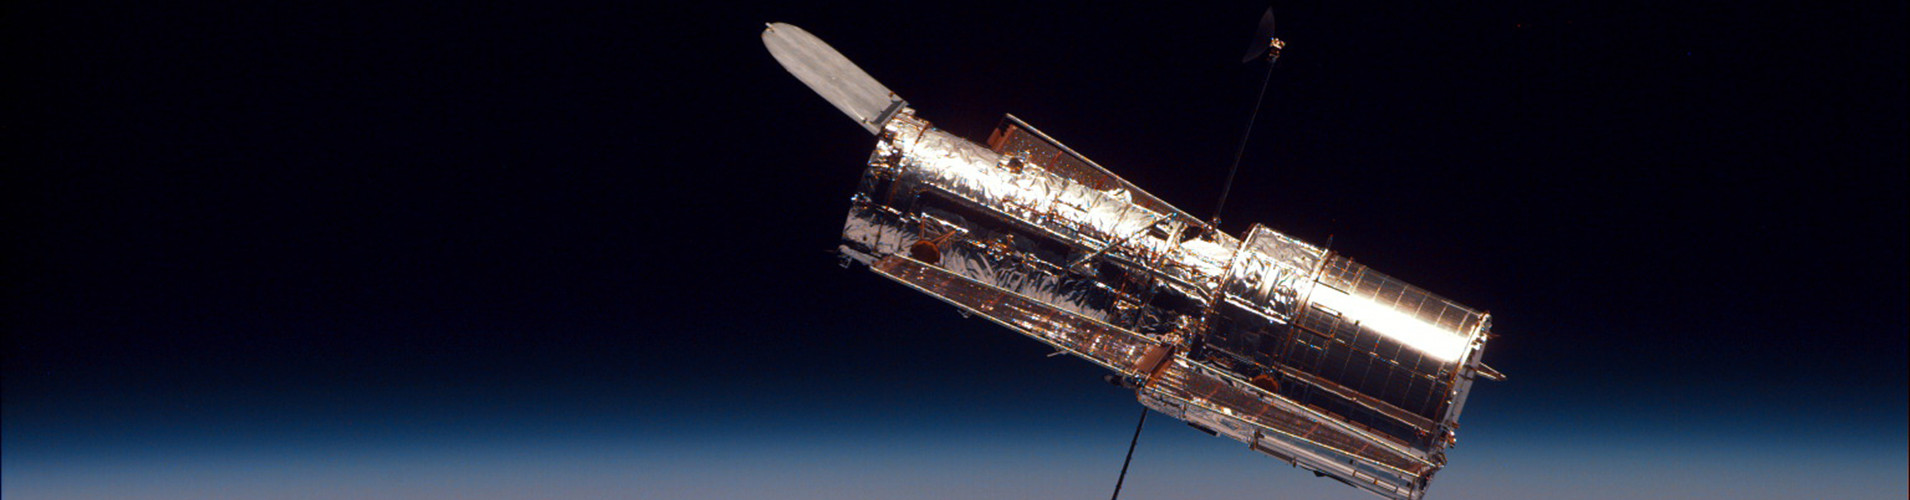 Hubble Space Telescope Banner